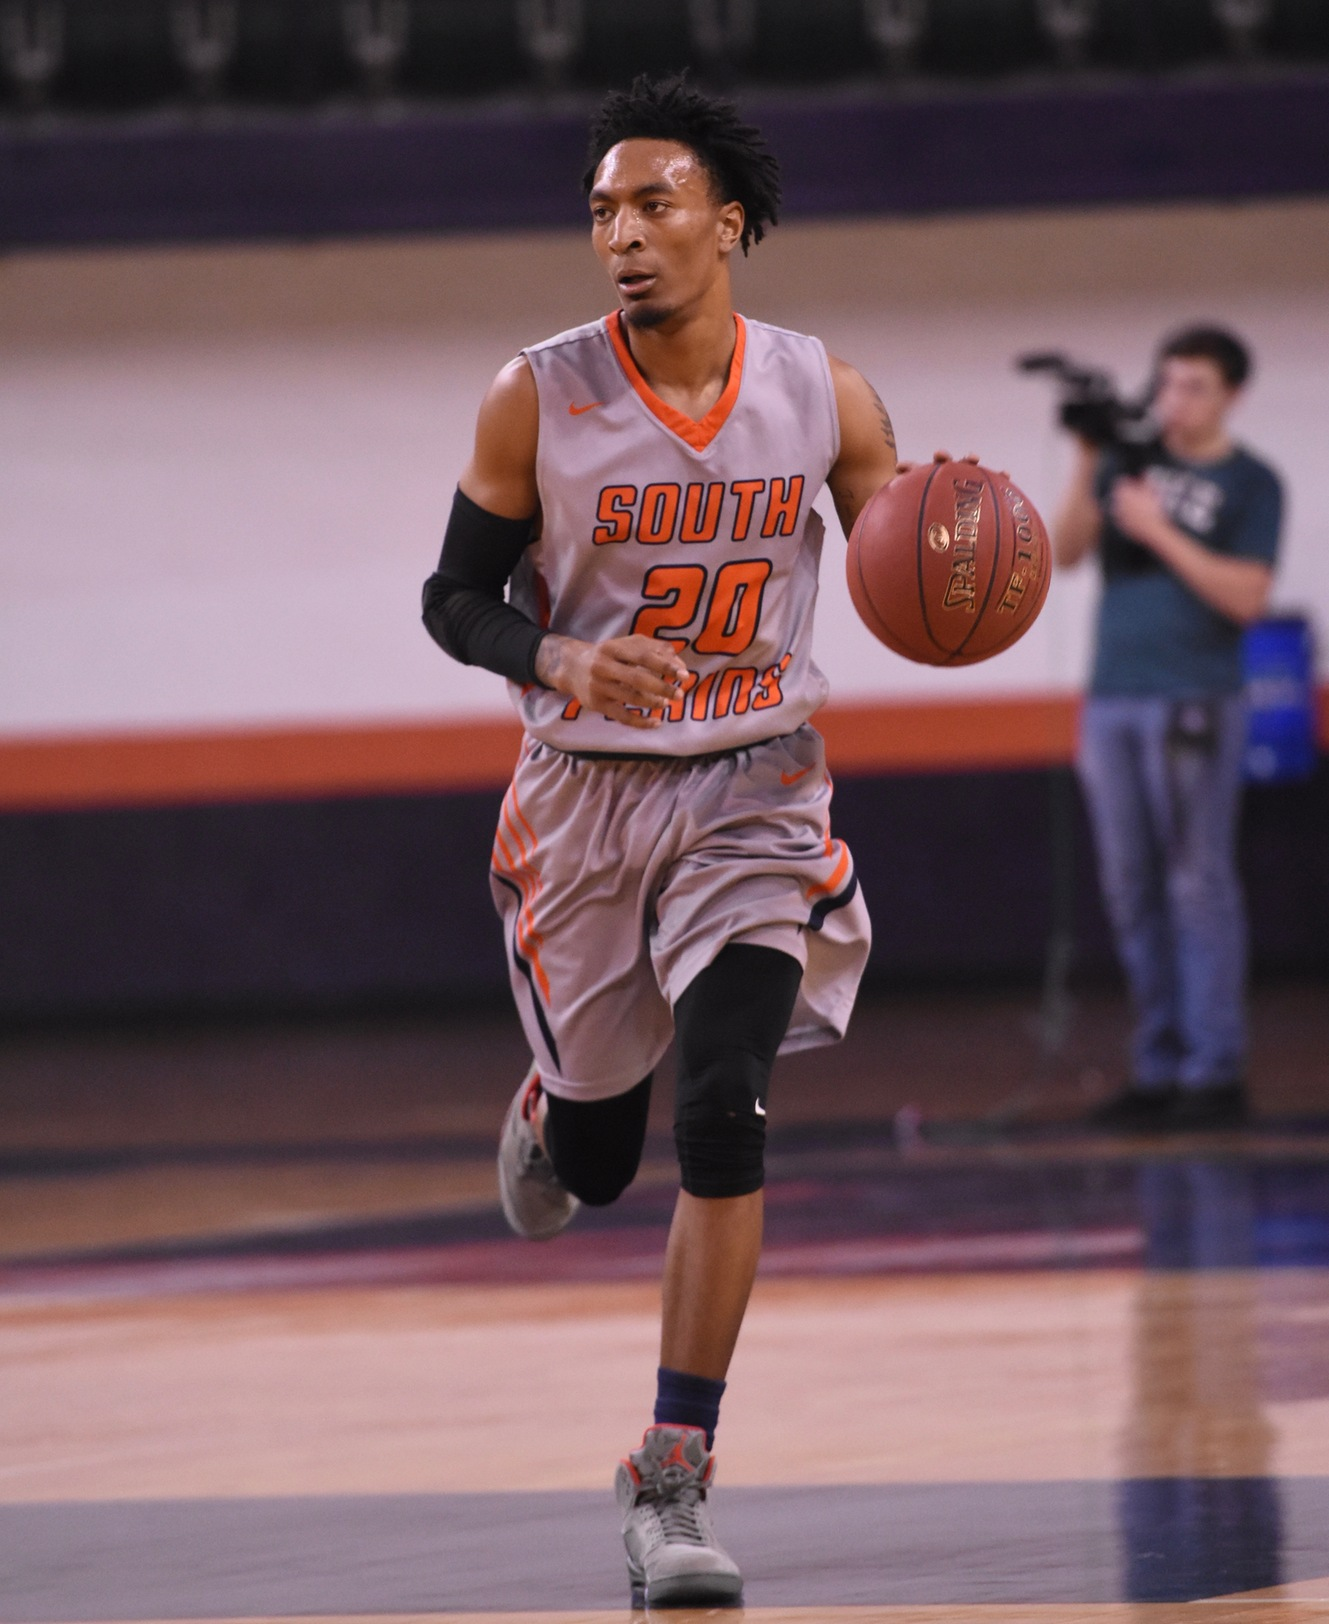 Texans fall to No. 8 Odessa 95-80 Monday night in Odessa